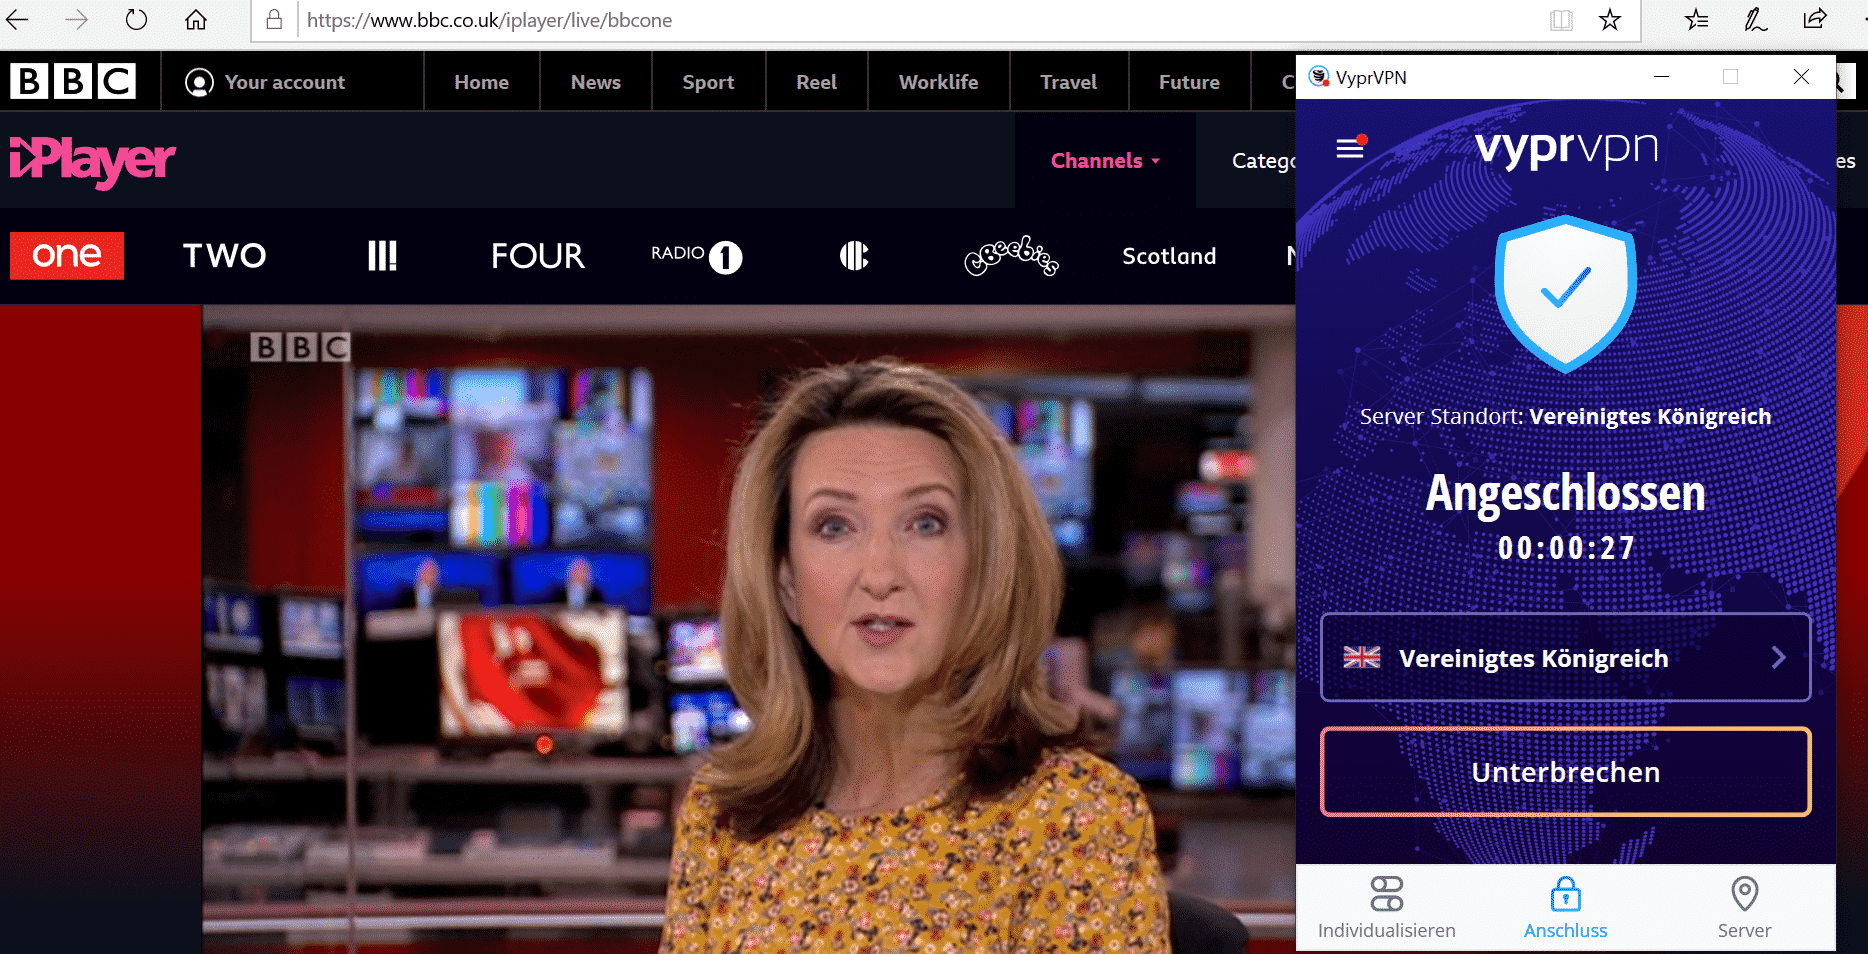 BBC iplayer abroad works!